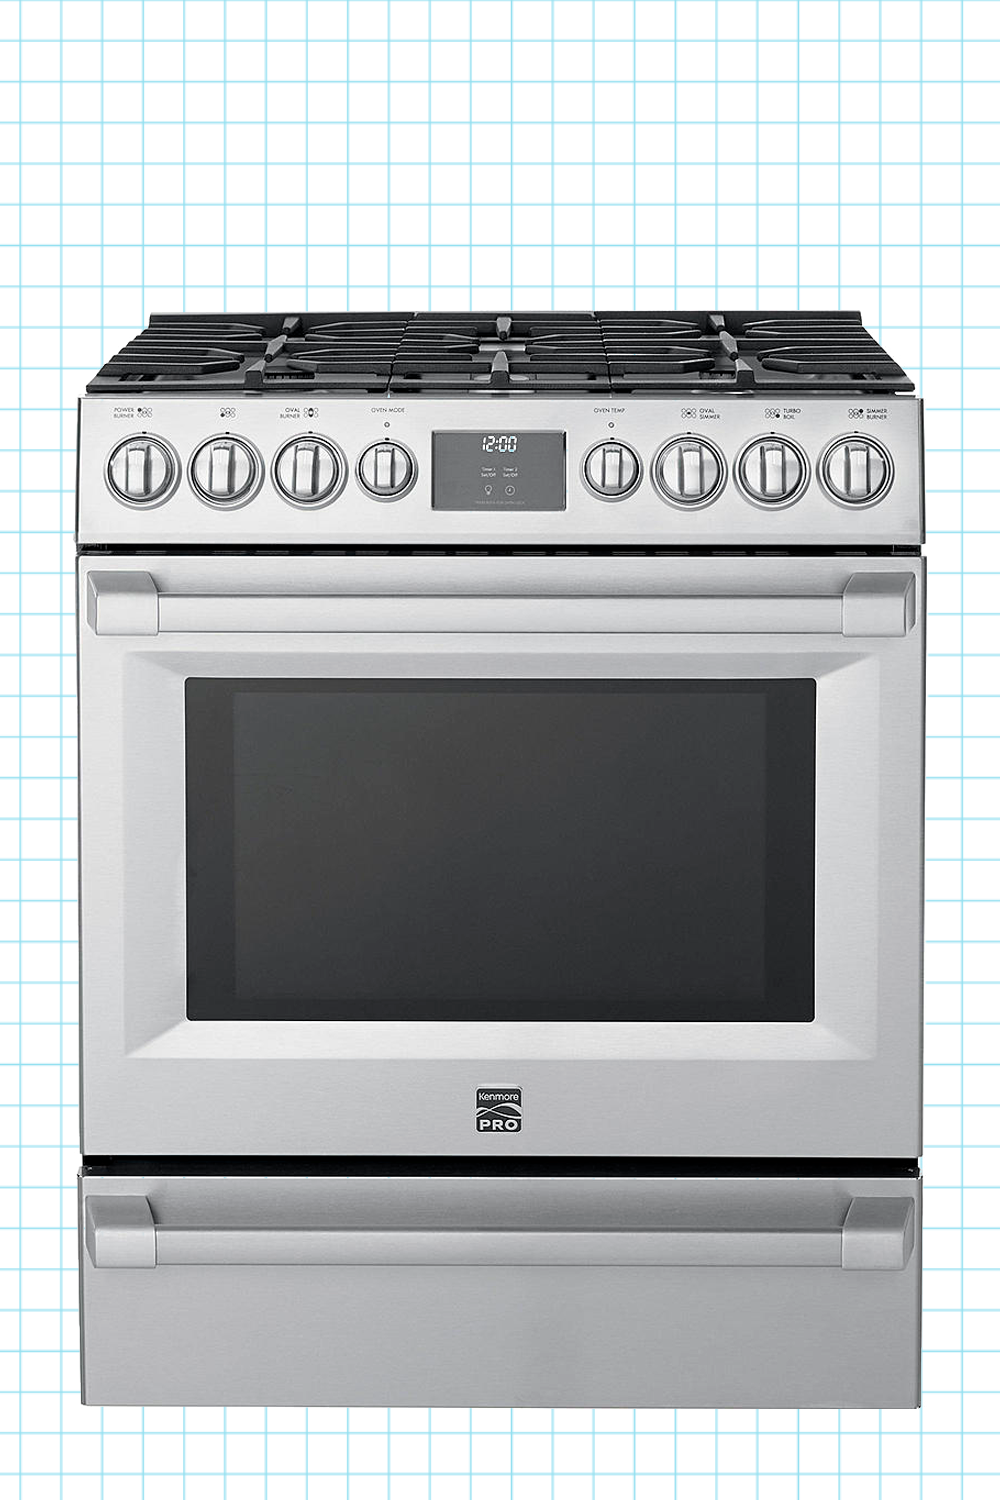 b2e194ef7 6 Best Gas Range Stove Reviews 2019 - Top Rated Gas Ranges